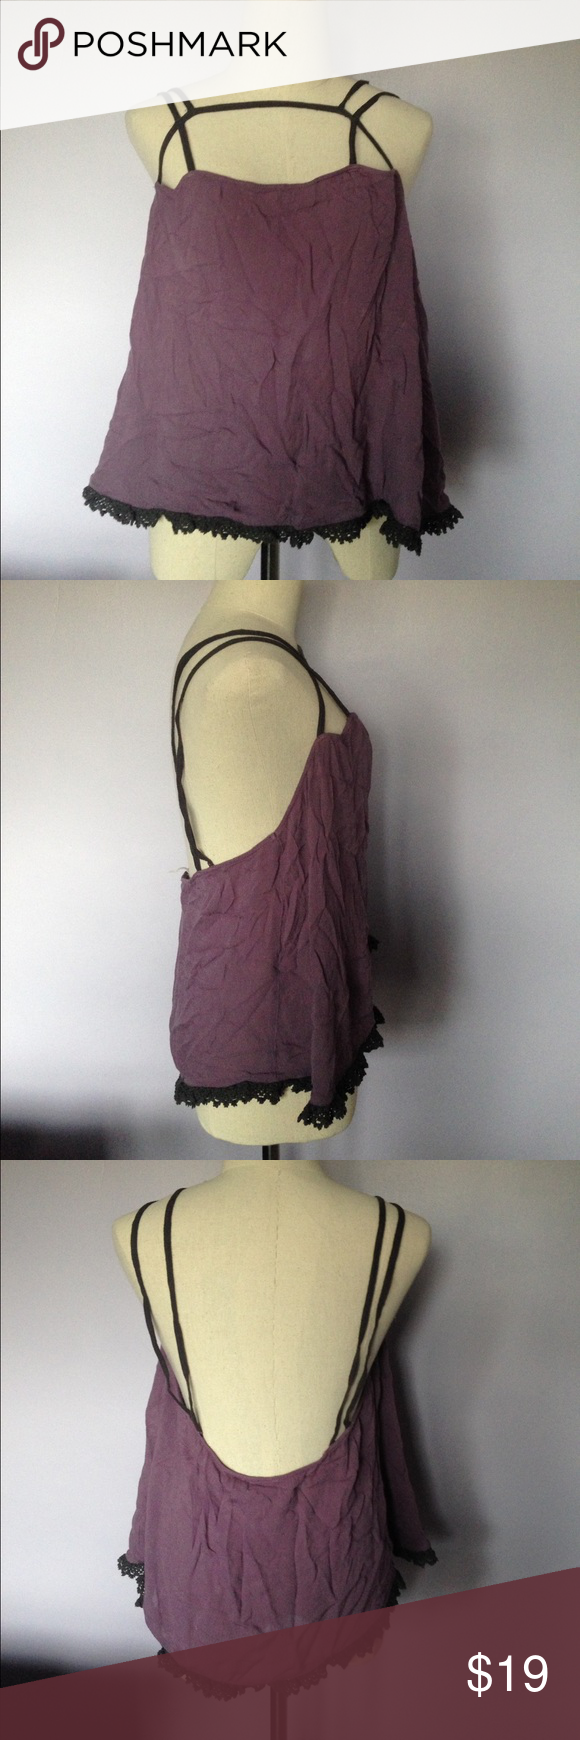 Free People Intimates Light Purple Strappy Tank Free People Intimates Light purple strappy tank. Material is somewhat see-through. 100% rayon. Free People Intimates & Sleepwear Chemises & Slips